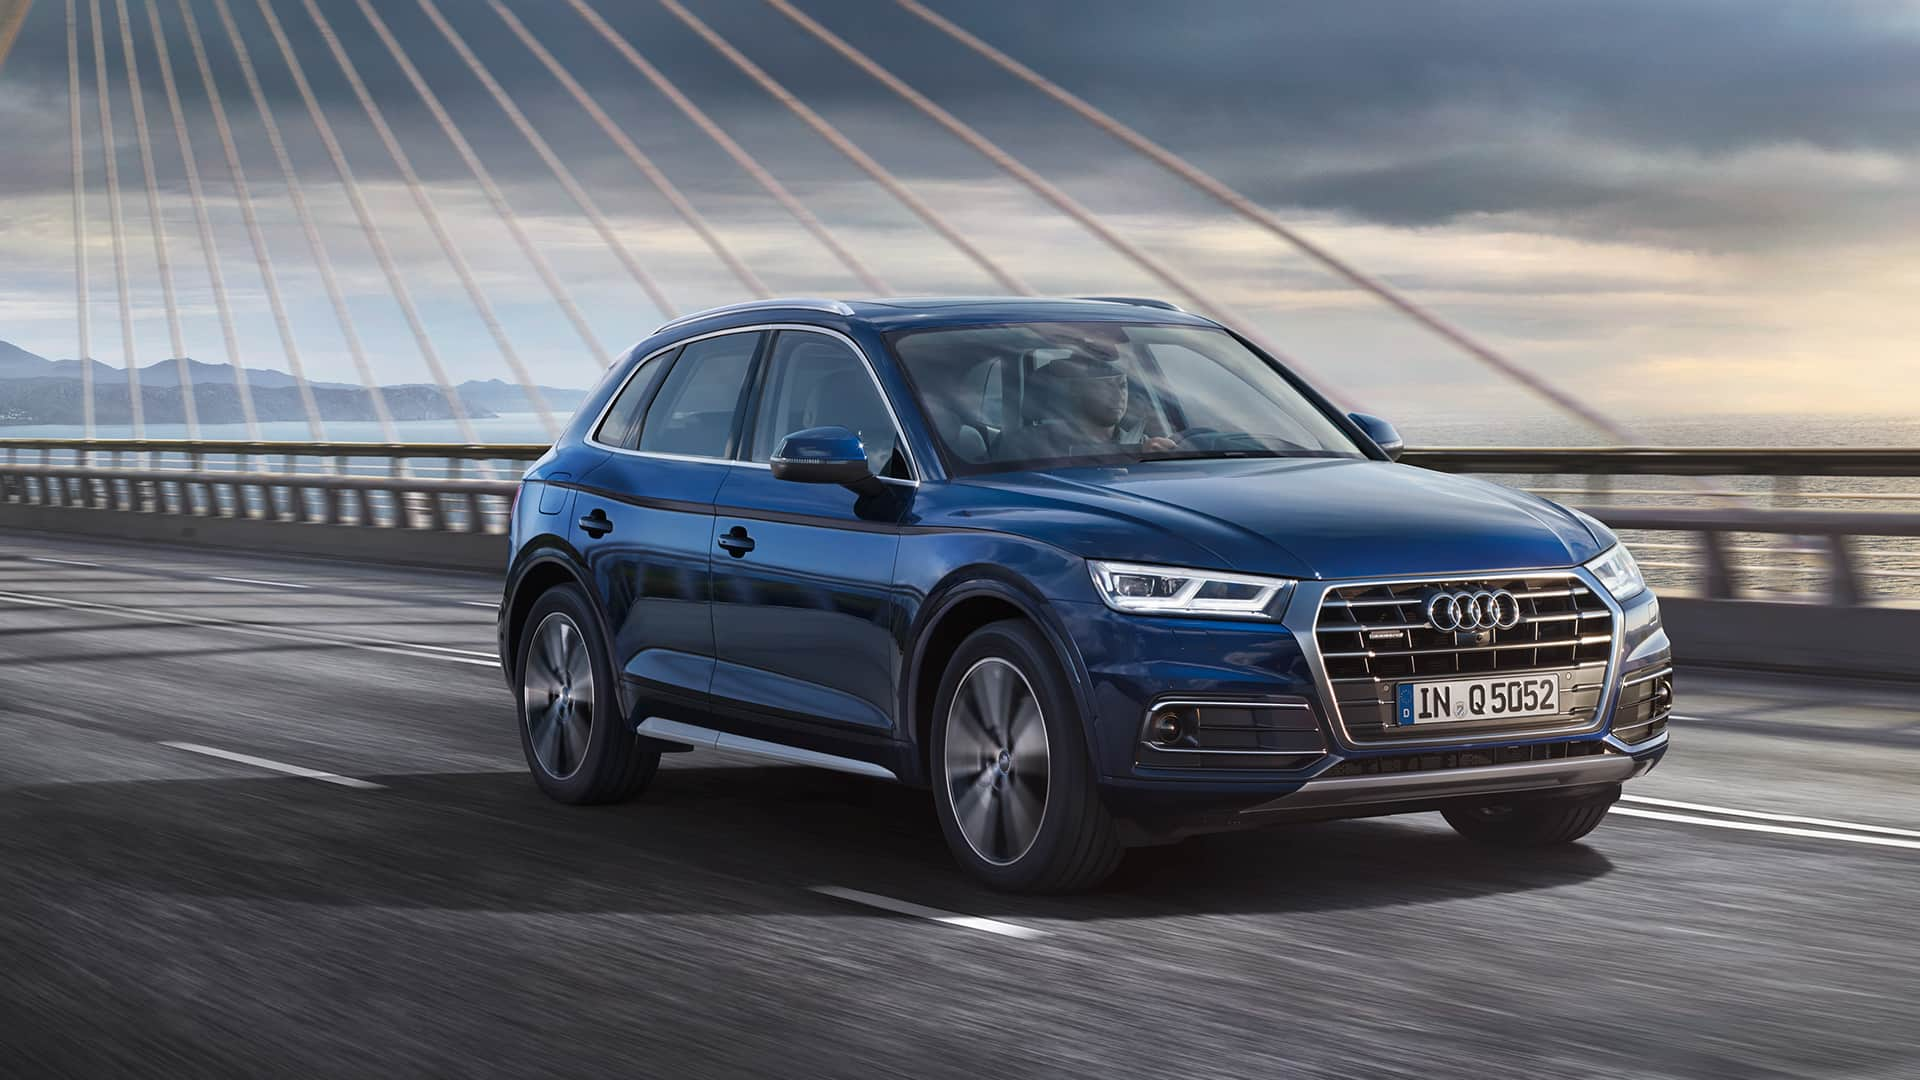 audi q5 luxury crossover suv audi australia audi australia official website luxury. Black Bedroom Furniture Sets. Home Design Ideas